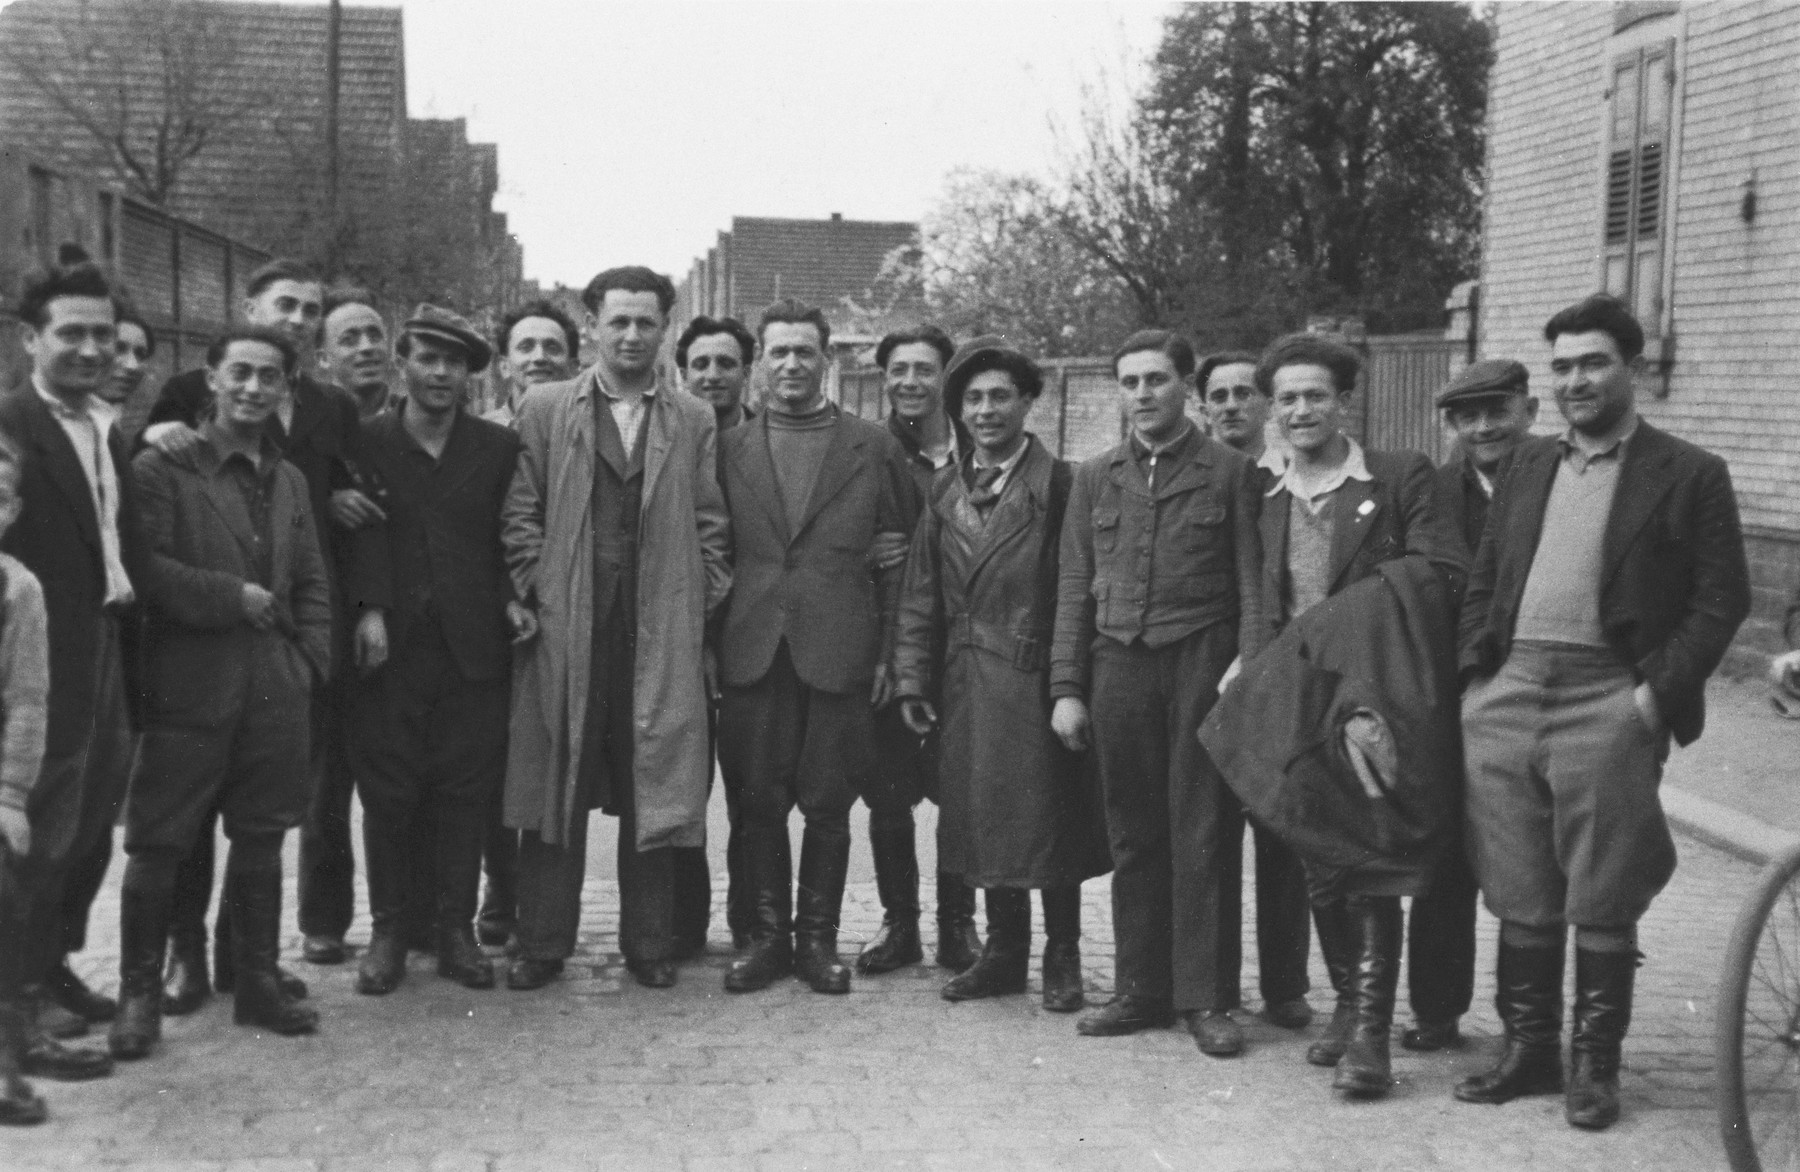 Group portrait of young Jewish DPs on a street in the Lampertheim displaced persons camp.